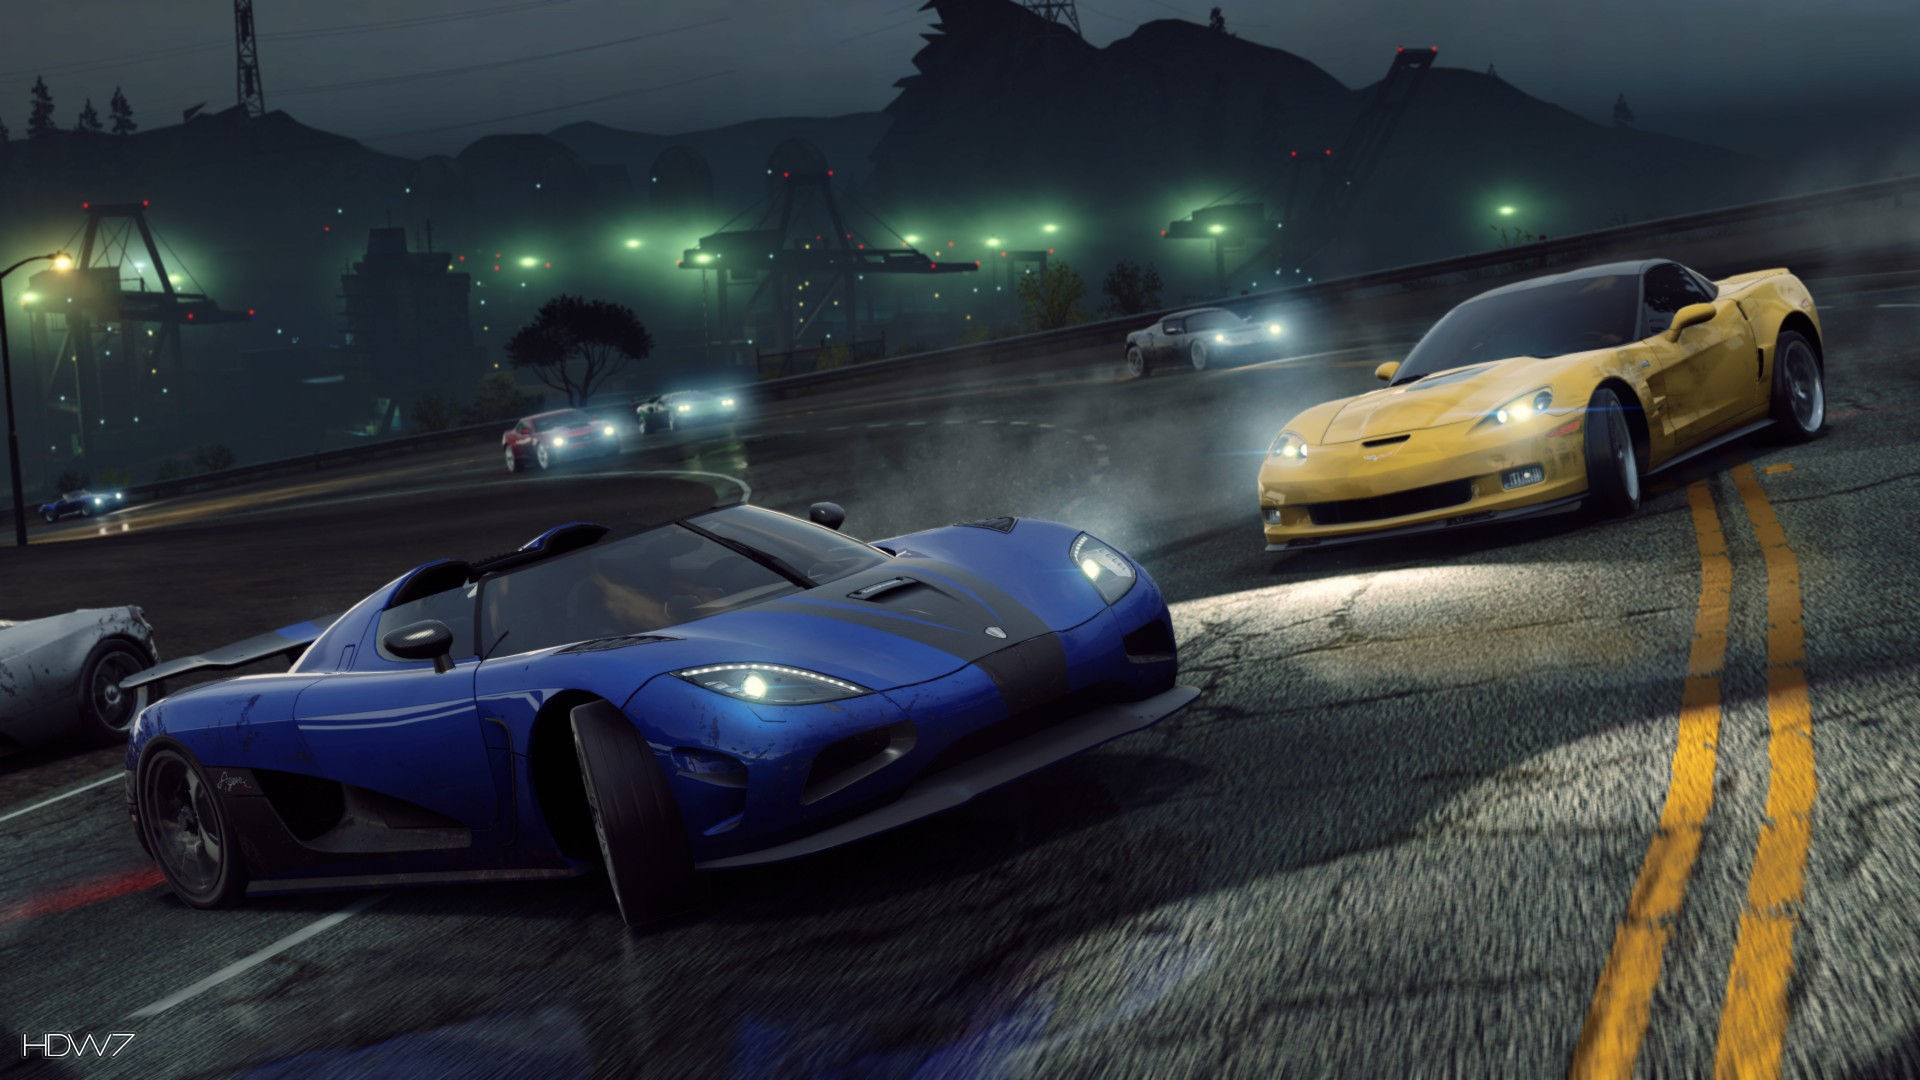 1920x1080 need for speed most wanted 2012 koenigsegg agera r widescreen hd wallpaper